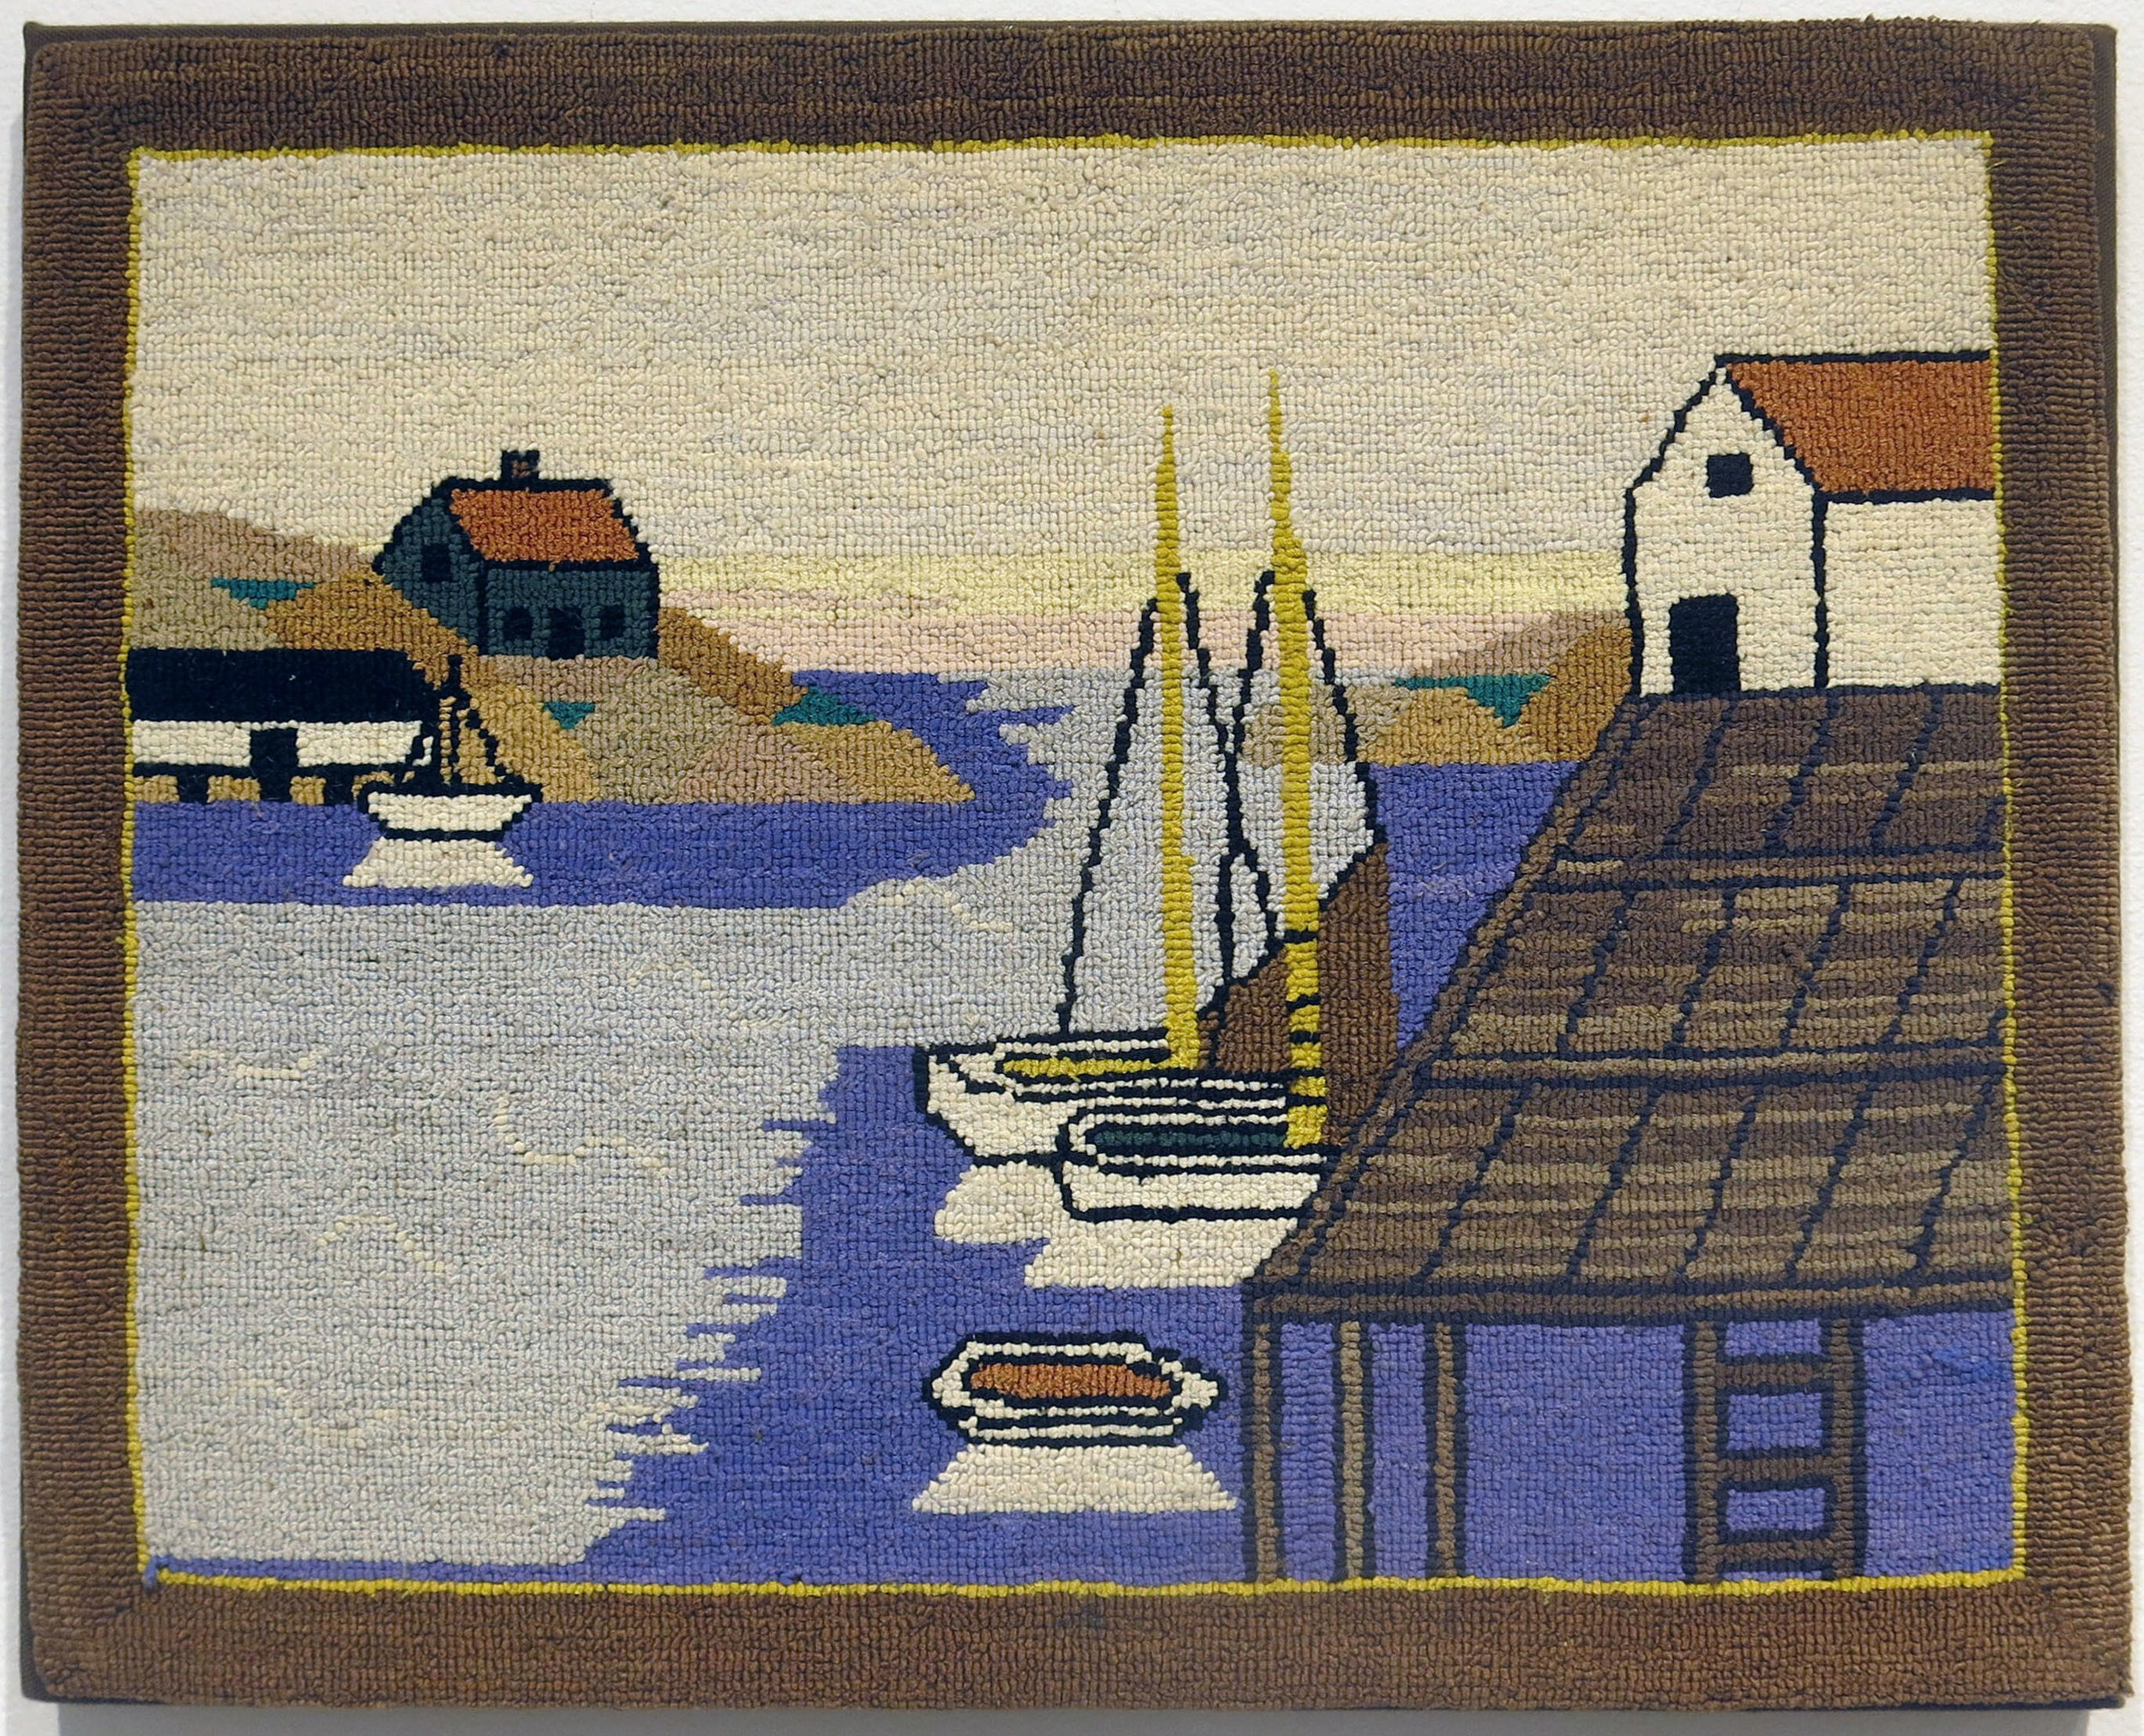 Anonymous, The Grenfell Mission,  Harbor Scene,   c.1950, silk, rayon; dyed, 15h x 18 1/2w in.